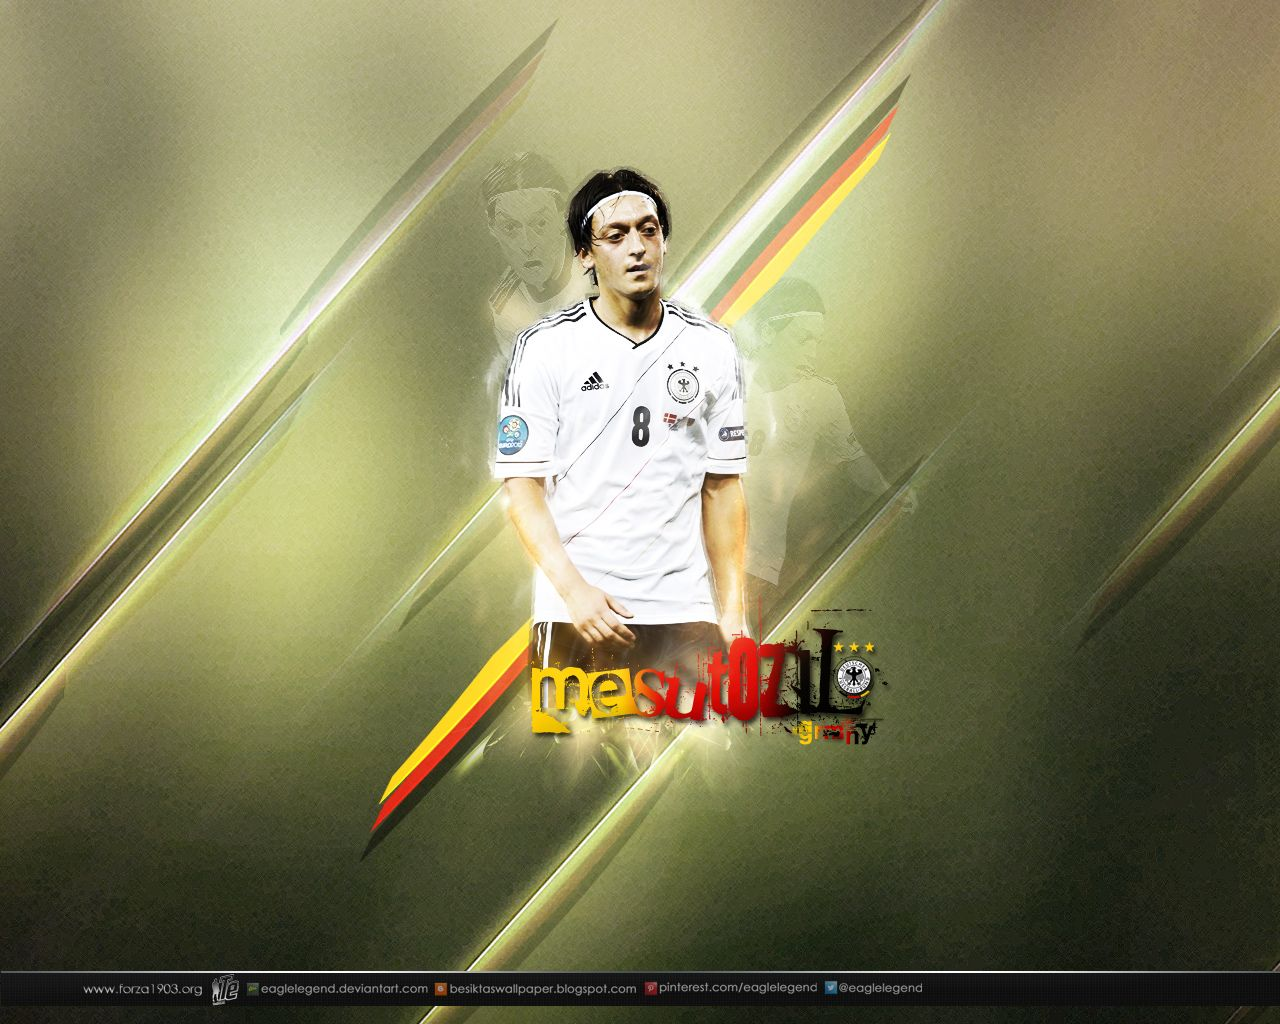 Mesut Ozil #Wallpaper By Eaglelegend.deviantart.com On